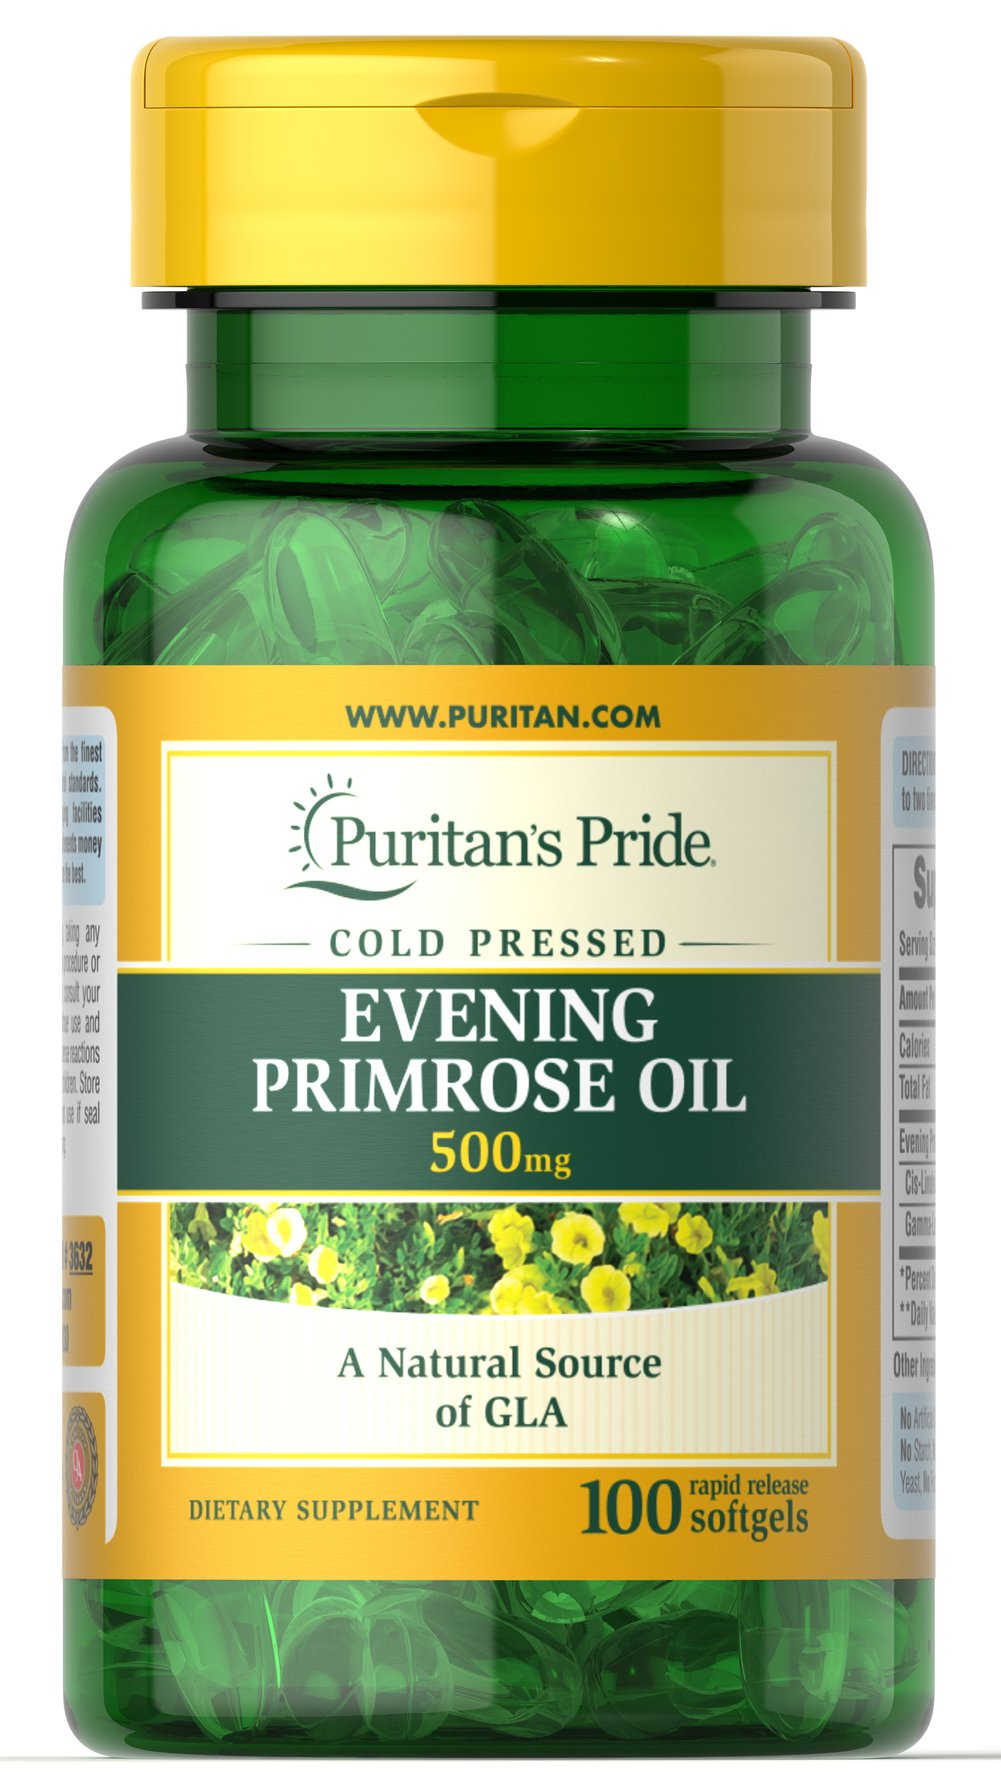 Evening Primrose Oil 500 mg with GLA  100 Softgels 500 mg $13.99